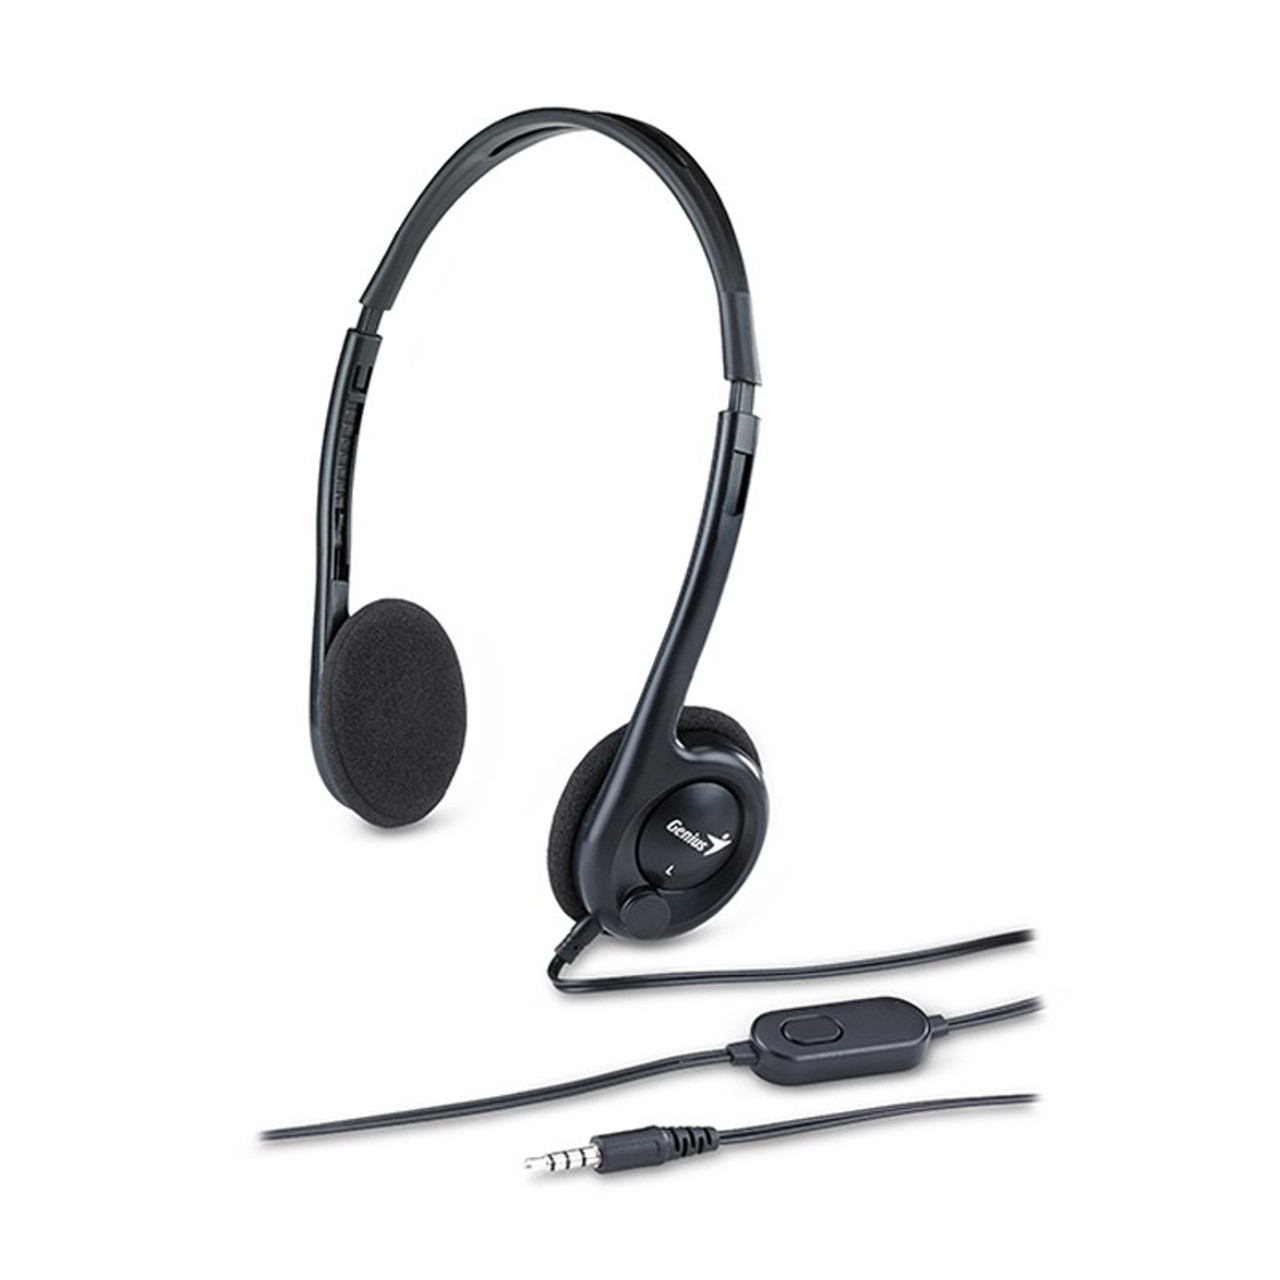 Image for Genius HS-M200C On-Ear Stereo Lightweight Headset CX Computer Superstore